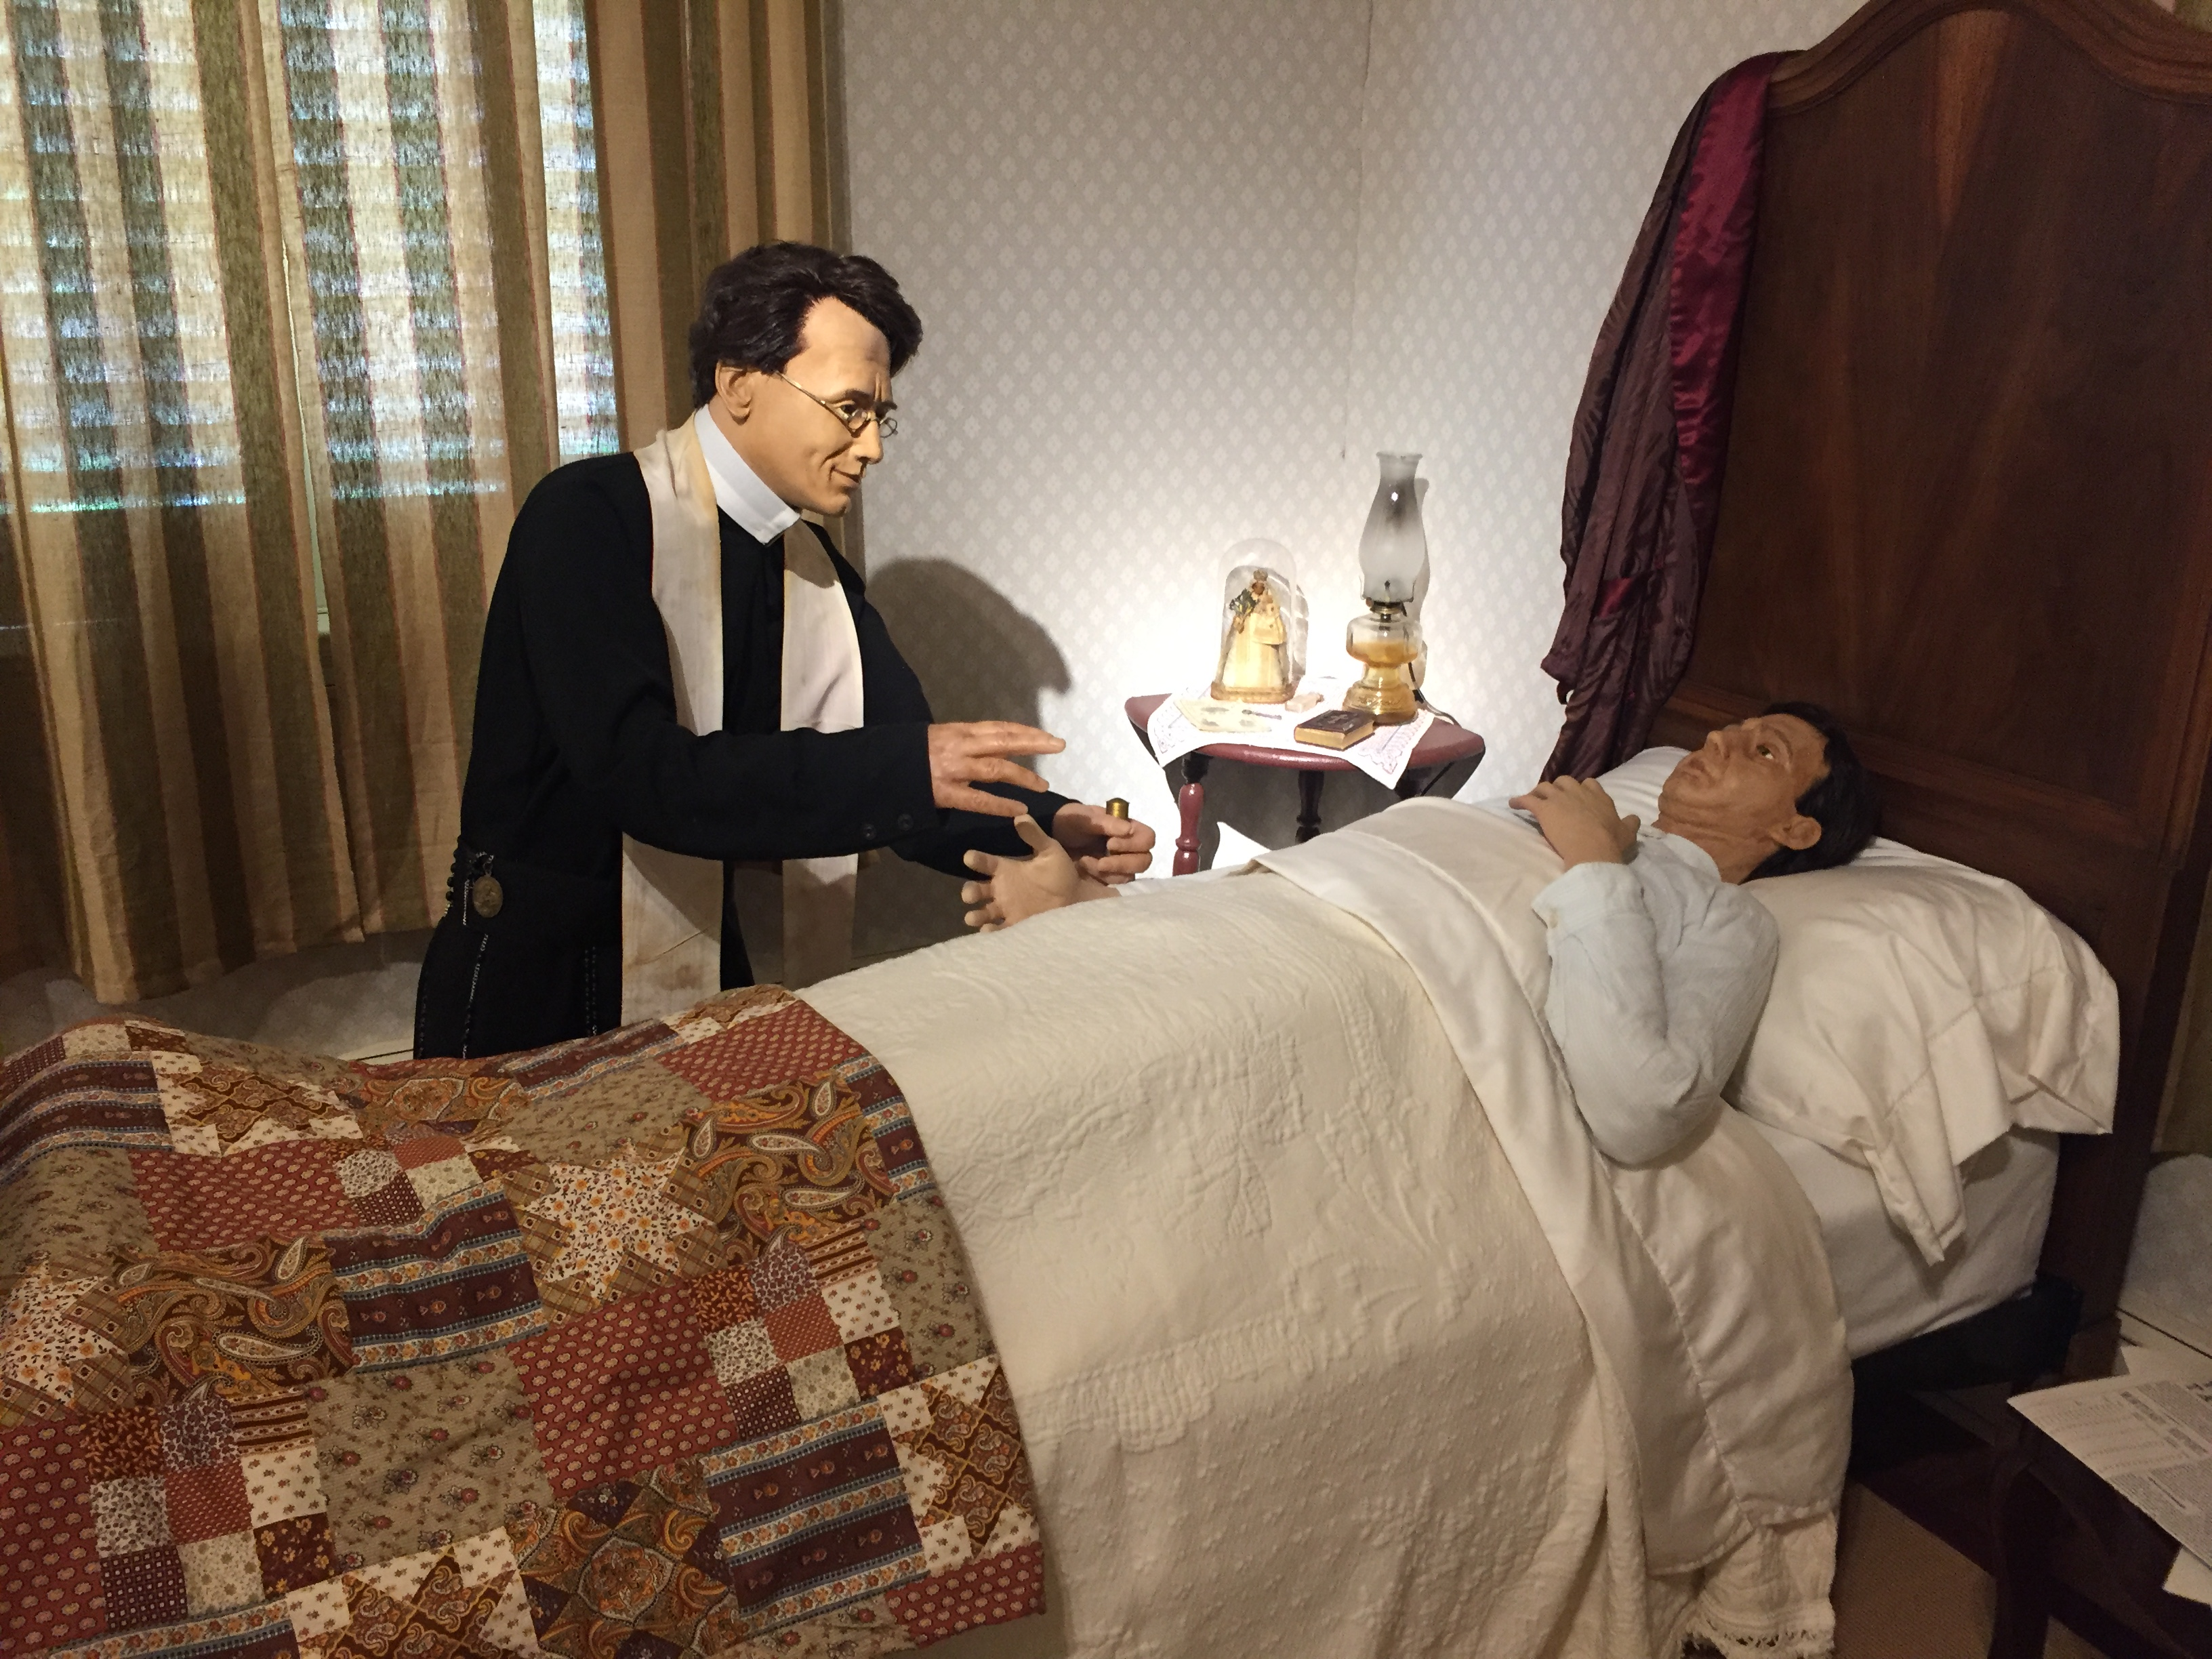 statues of man hovering over sick man in bed